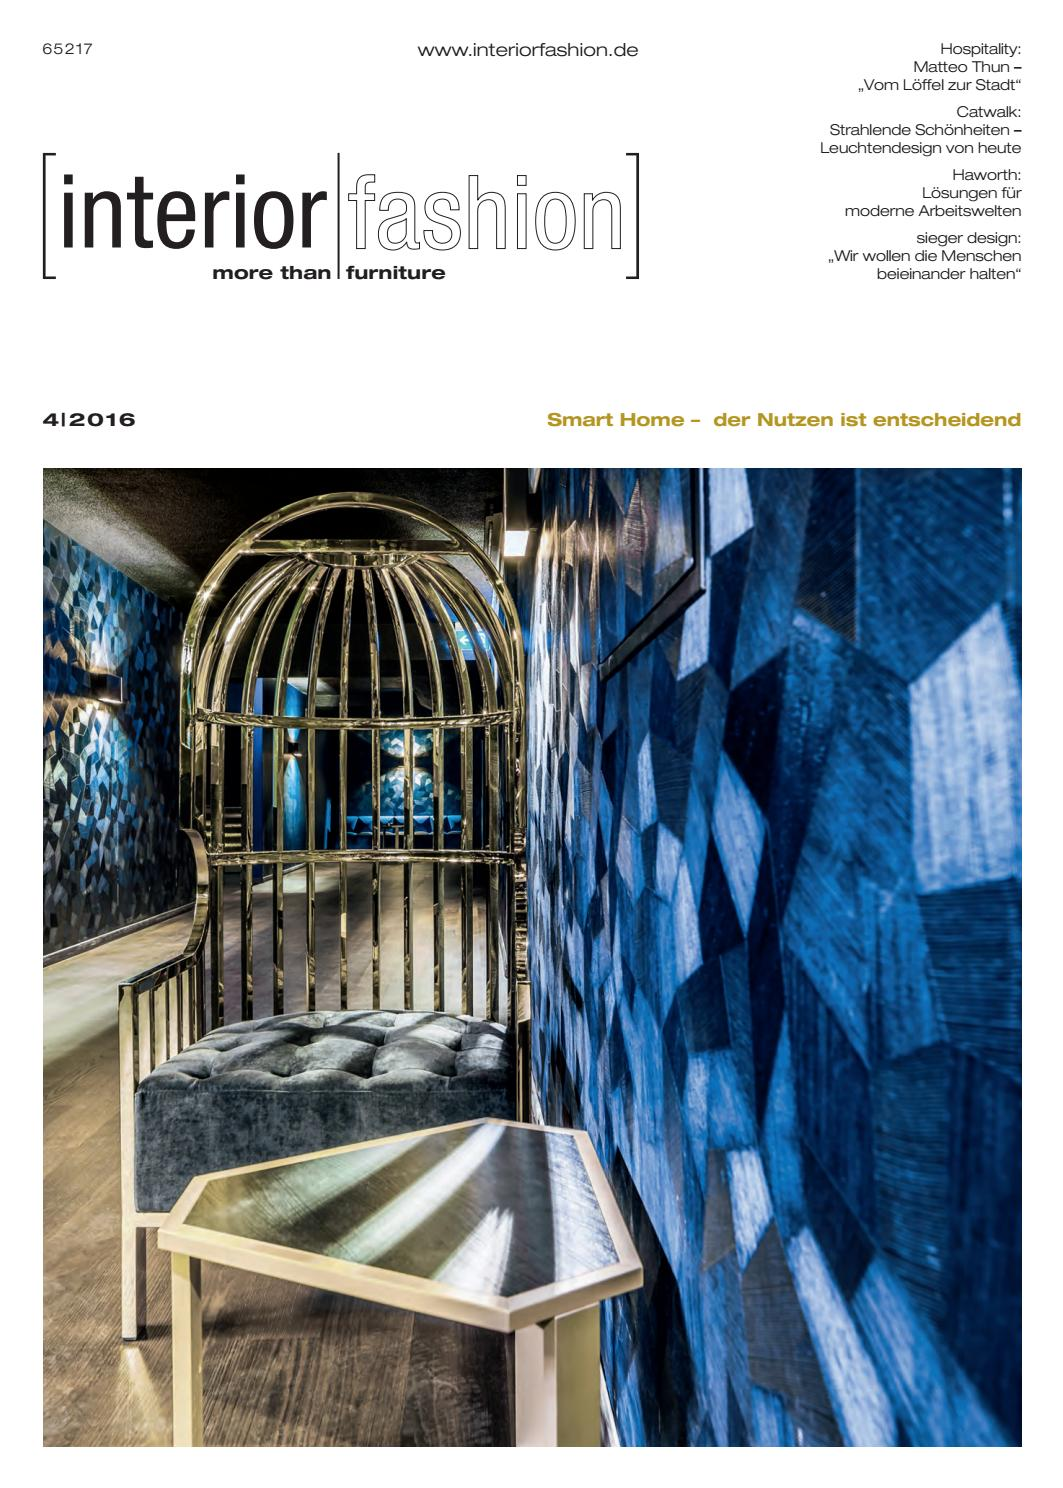 Tagesdecken Betten Reiter Interiorfashion 4 2016 By Interiorfashion Issuu